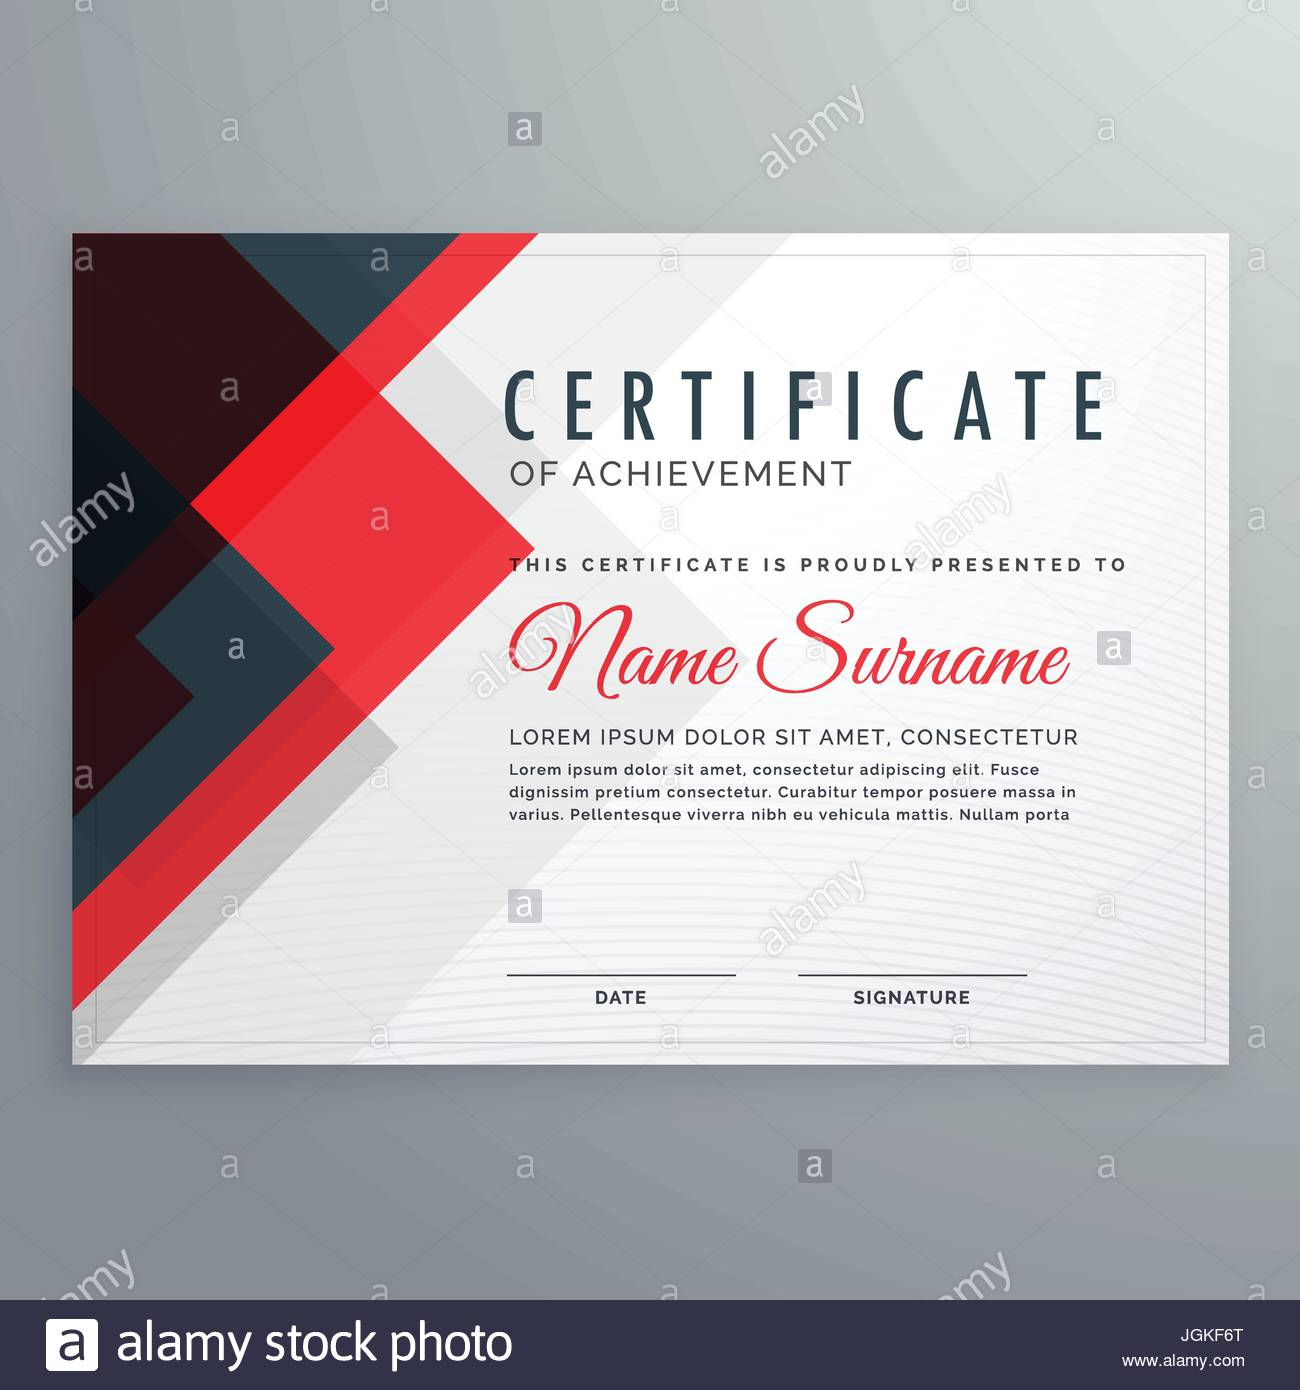 creative certificate of achievement award template with red and clue